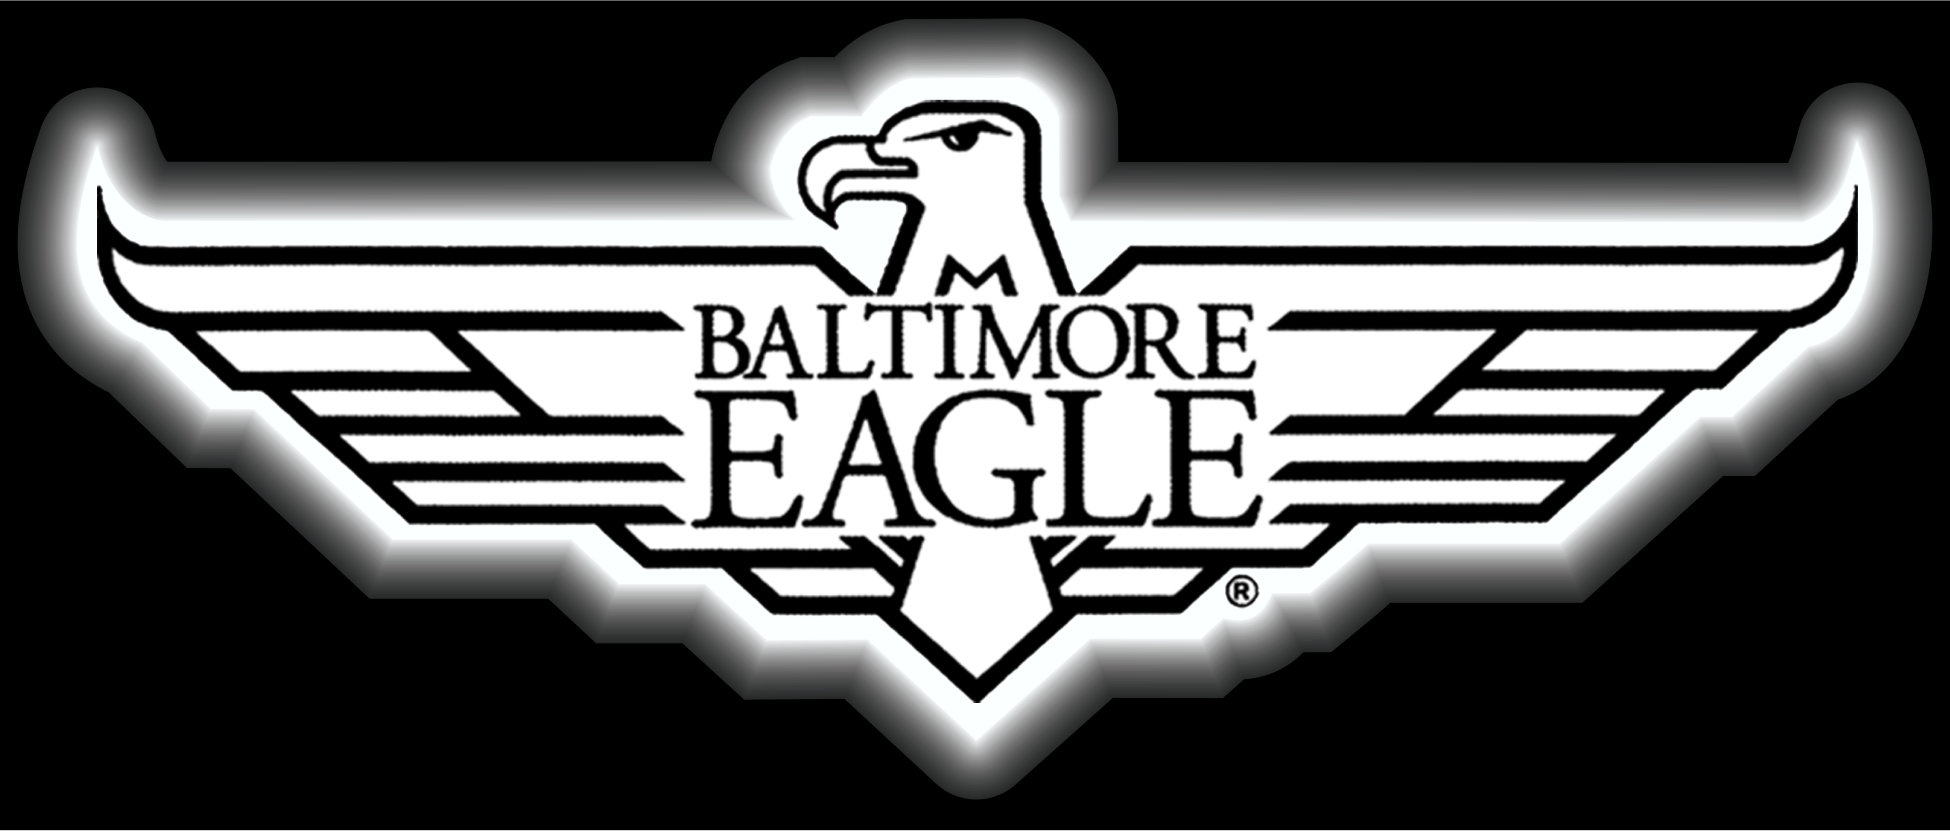 THE BALTIMORE EAGLE